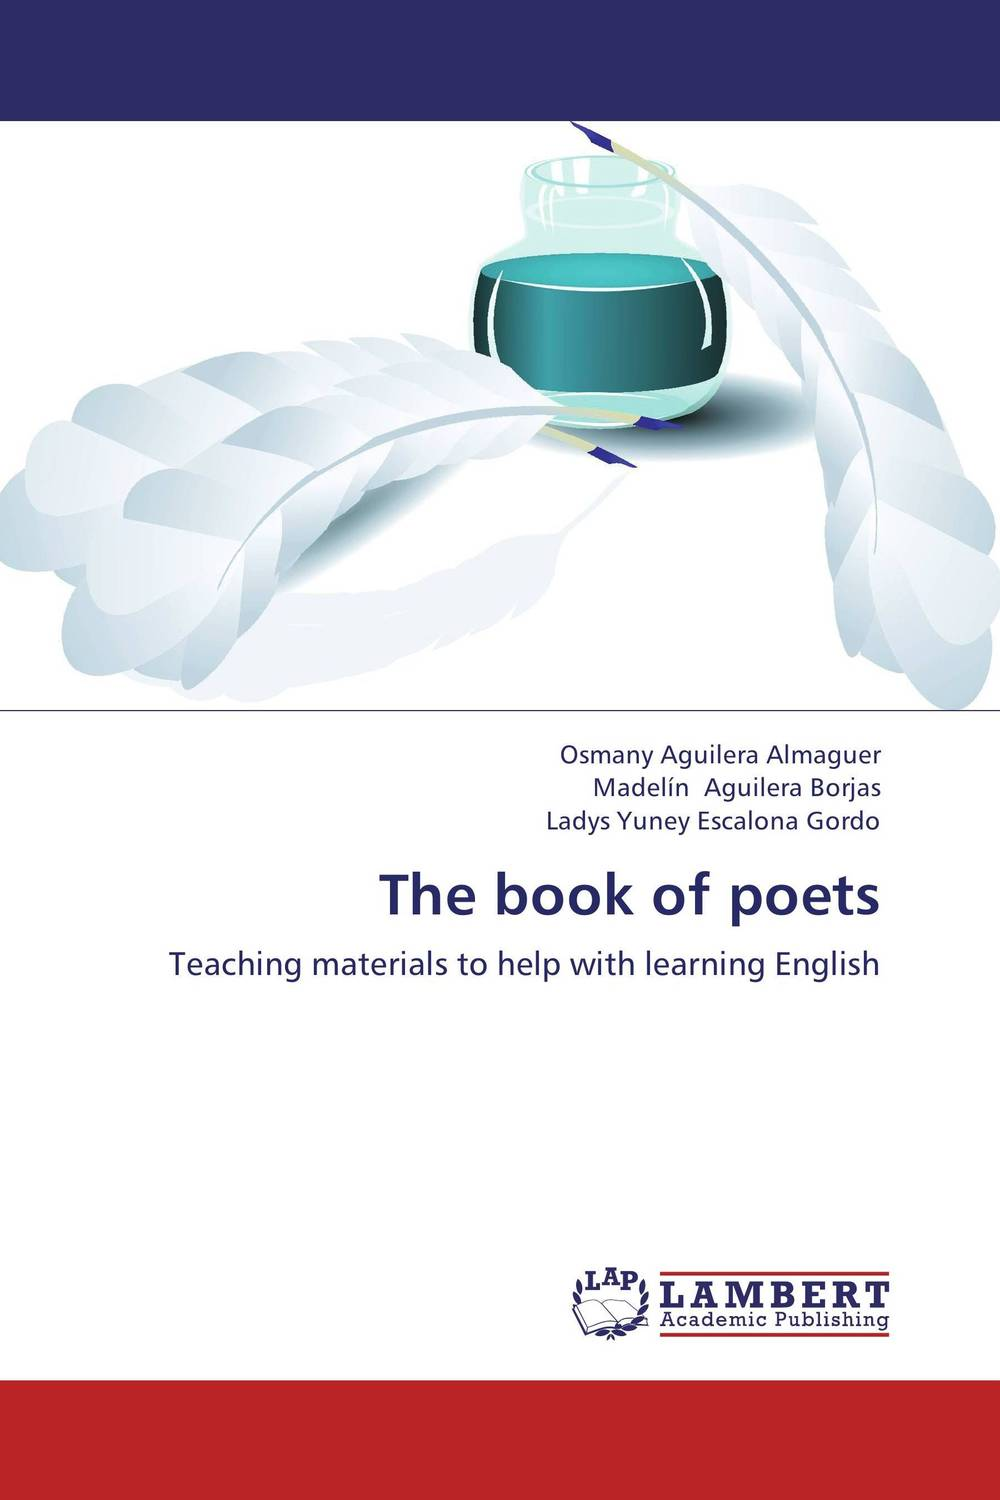 The book of poets williams a research improve your reading and referencing skills b2